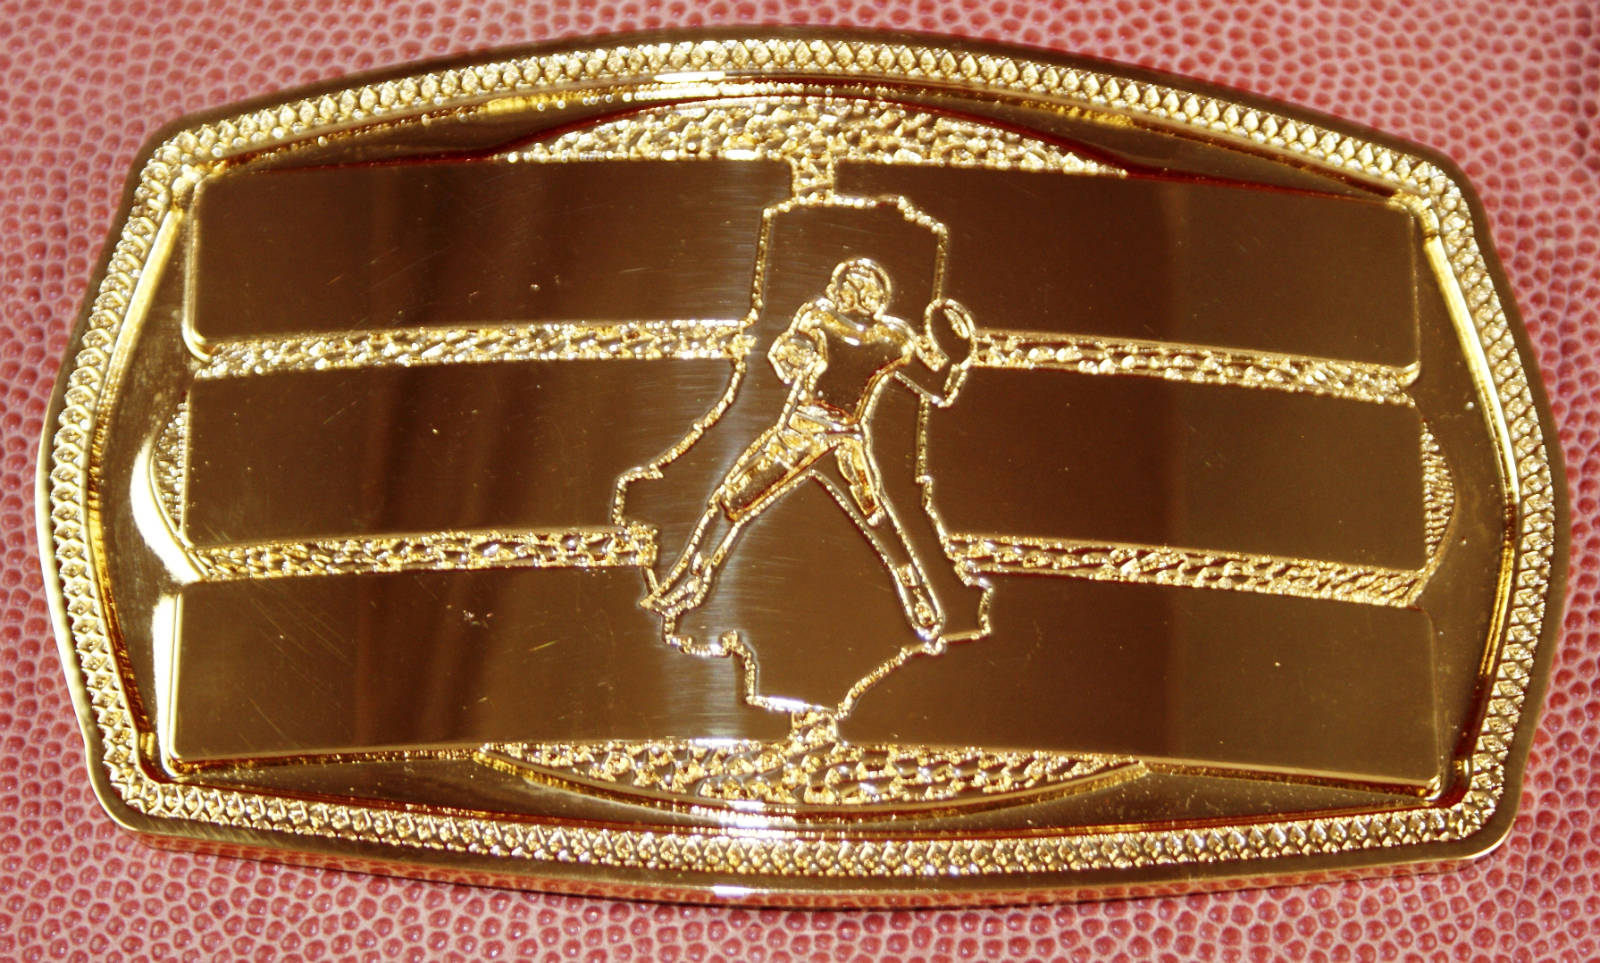 Fantasy Football Belt Trophy http://topropebelts.com/gallery/final-league-fantasy-football-belt/